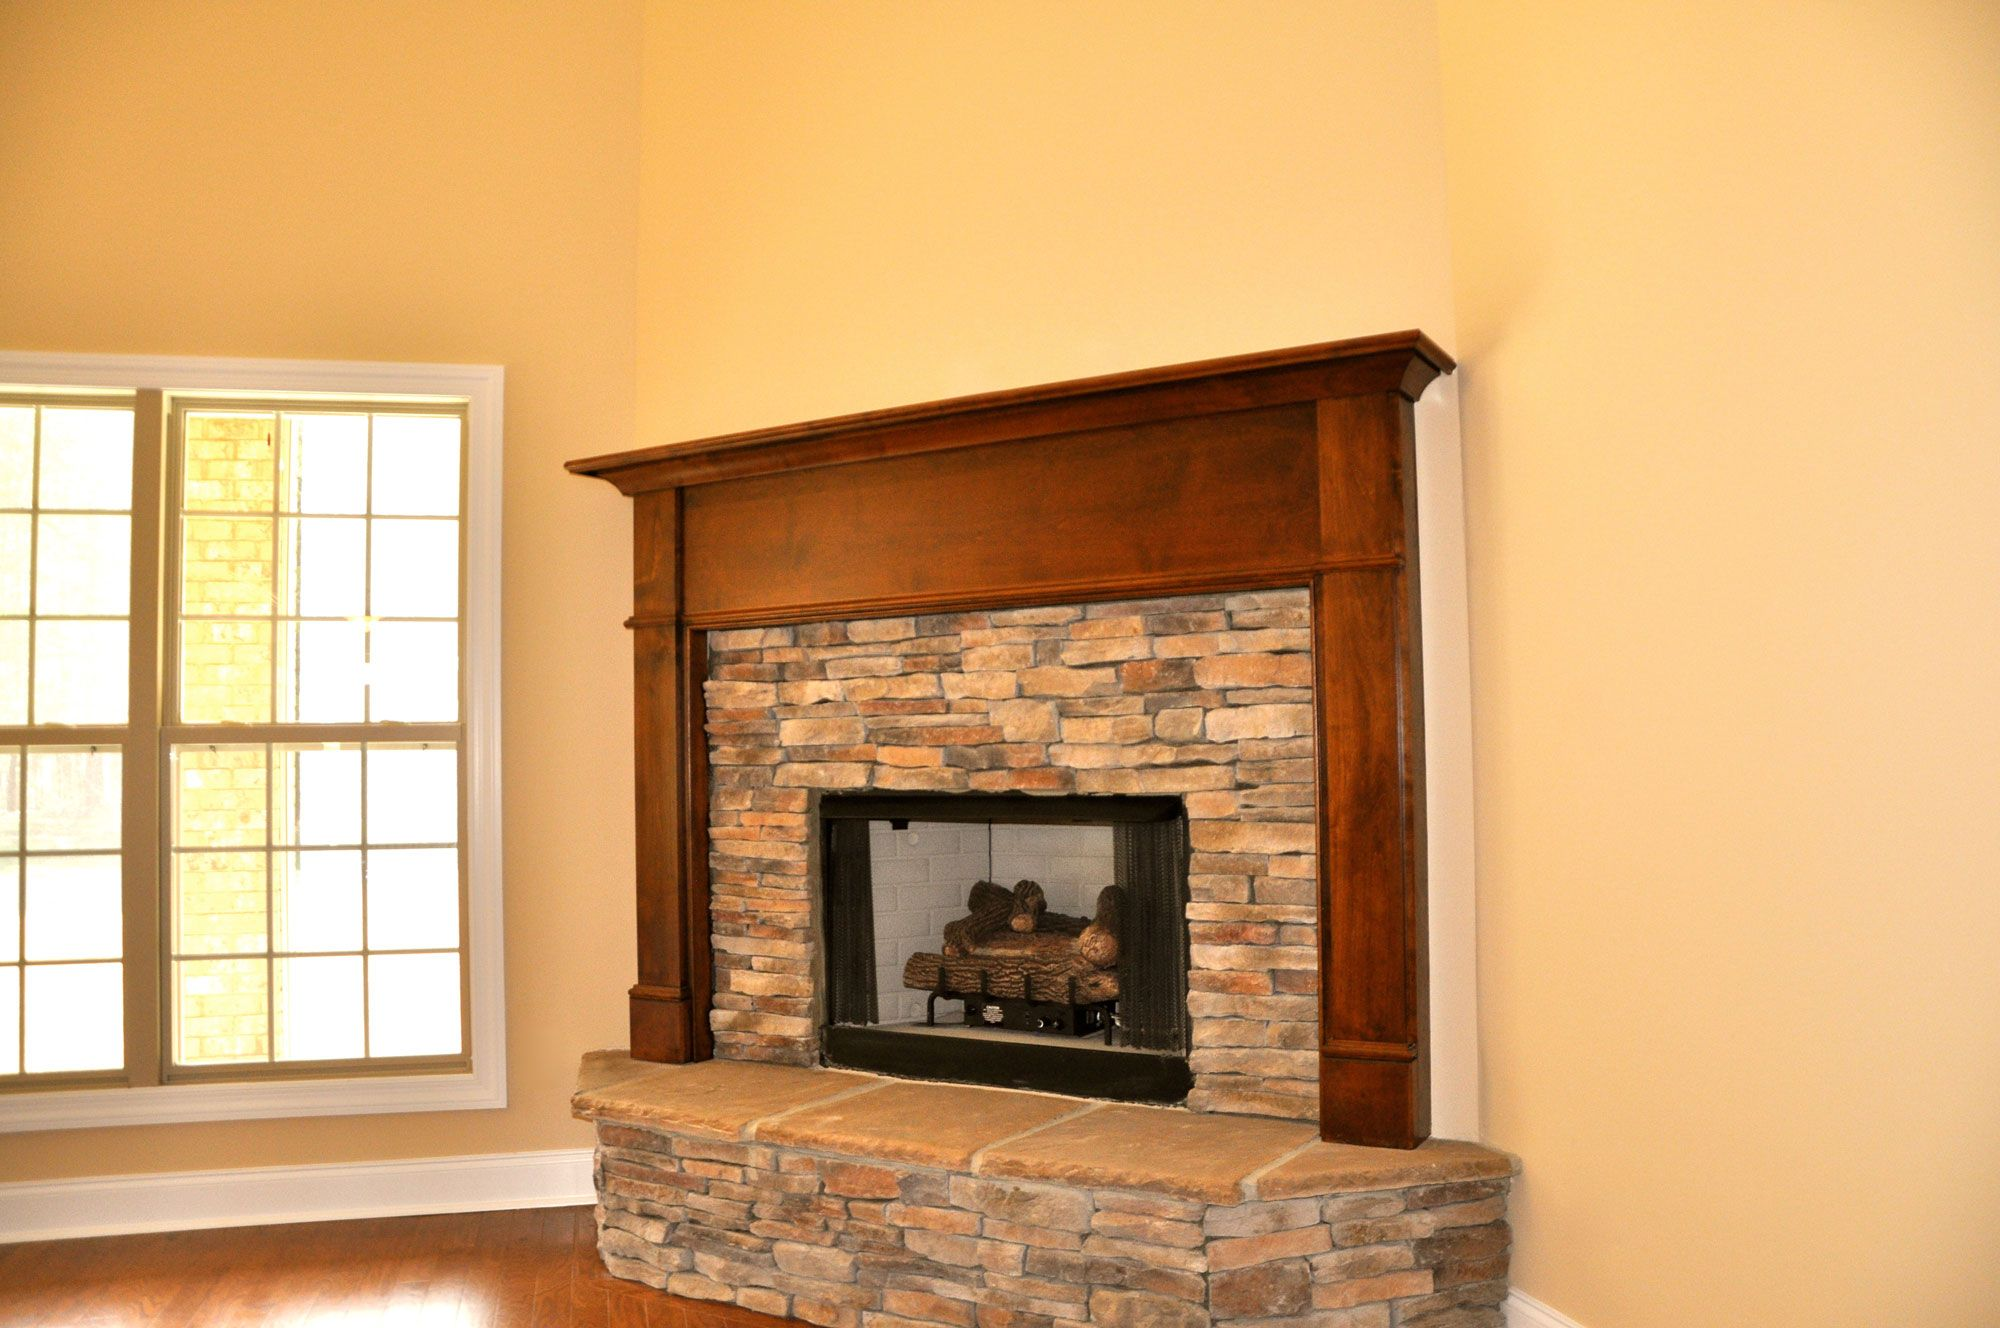 Craftsman style fireplace mantel - The Arts Crafts Mantel Beautifully Simple Mission Style